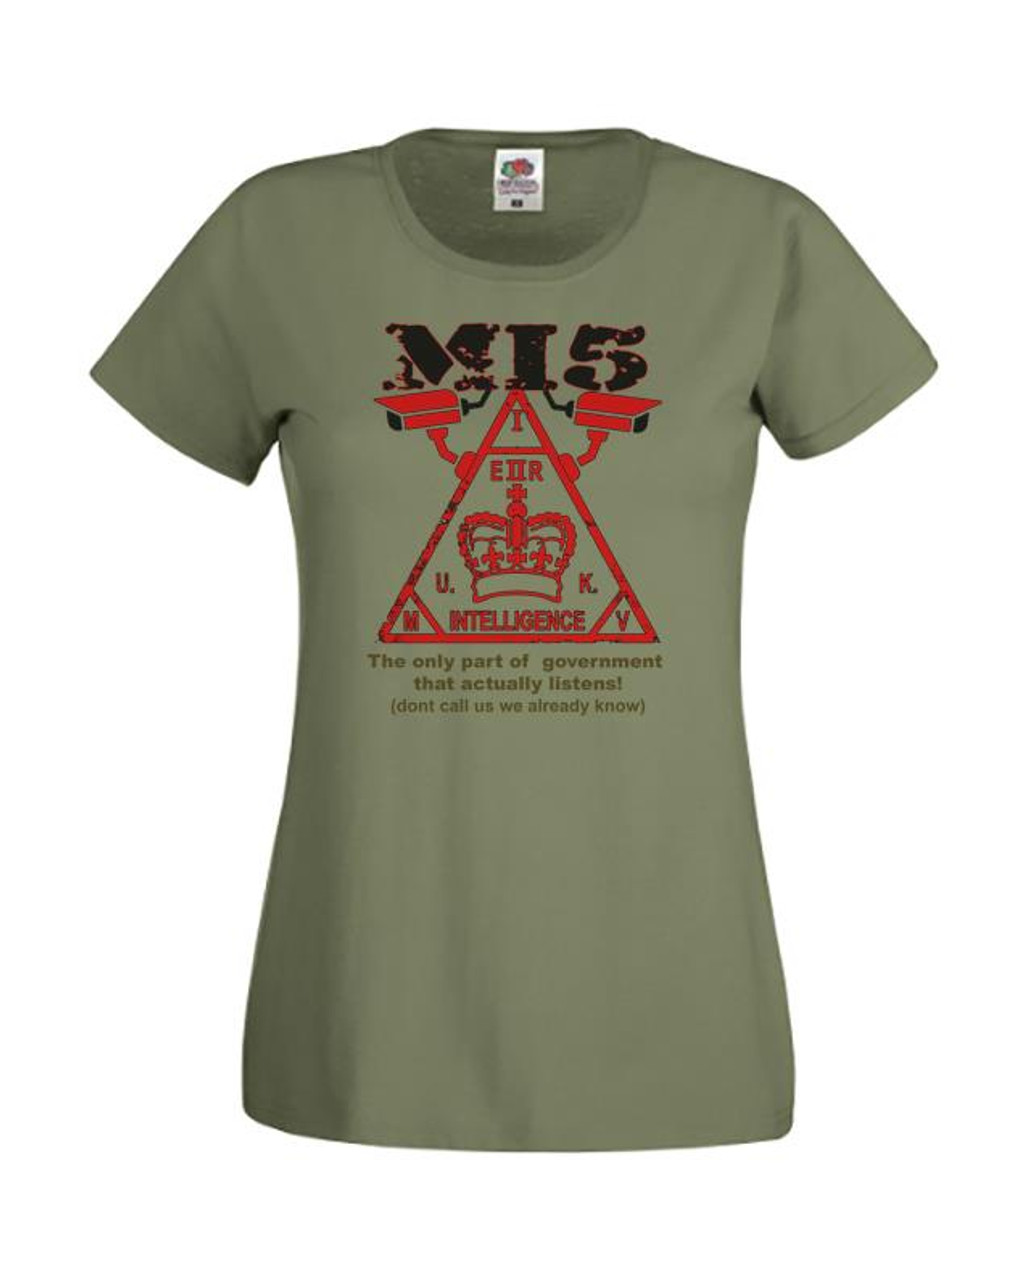 Unisex Olive Green Love my Country Government I/'m Afraid of T-Shirt Shirt